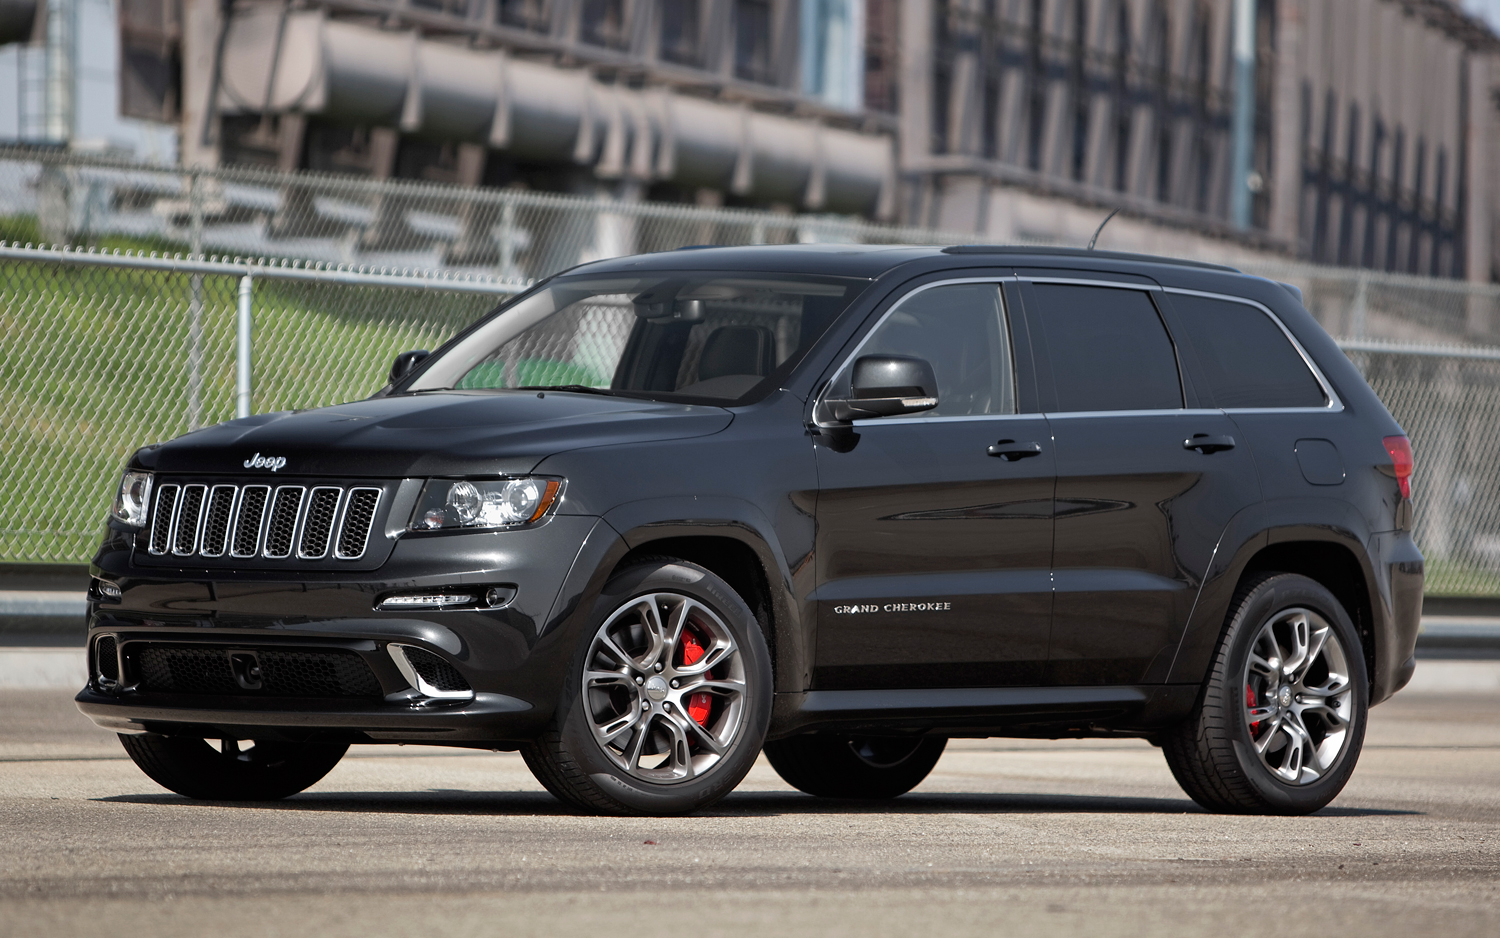 First Test: 2012 Jeep Grand Cherokee SRT8